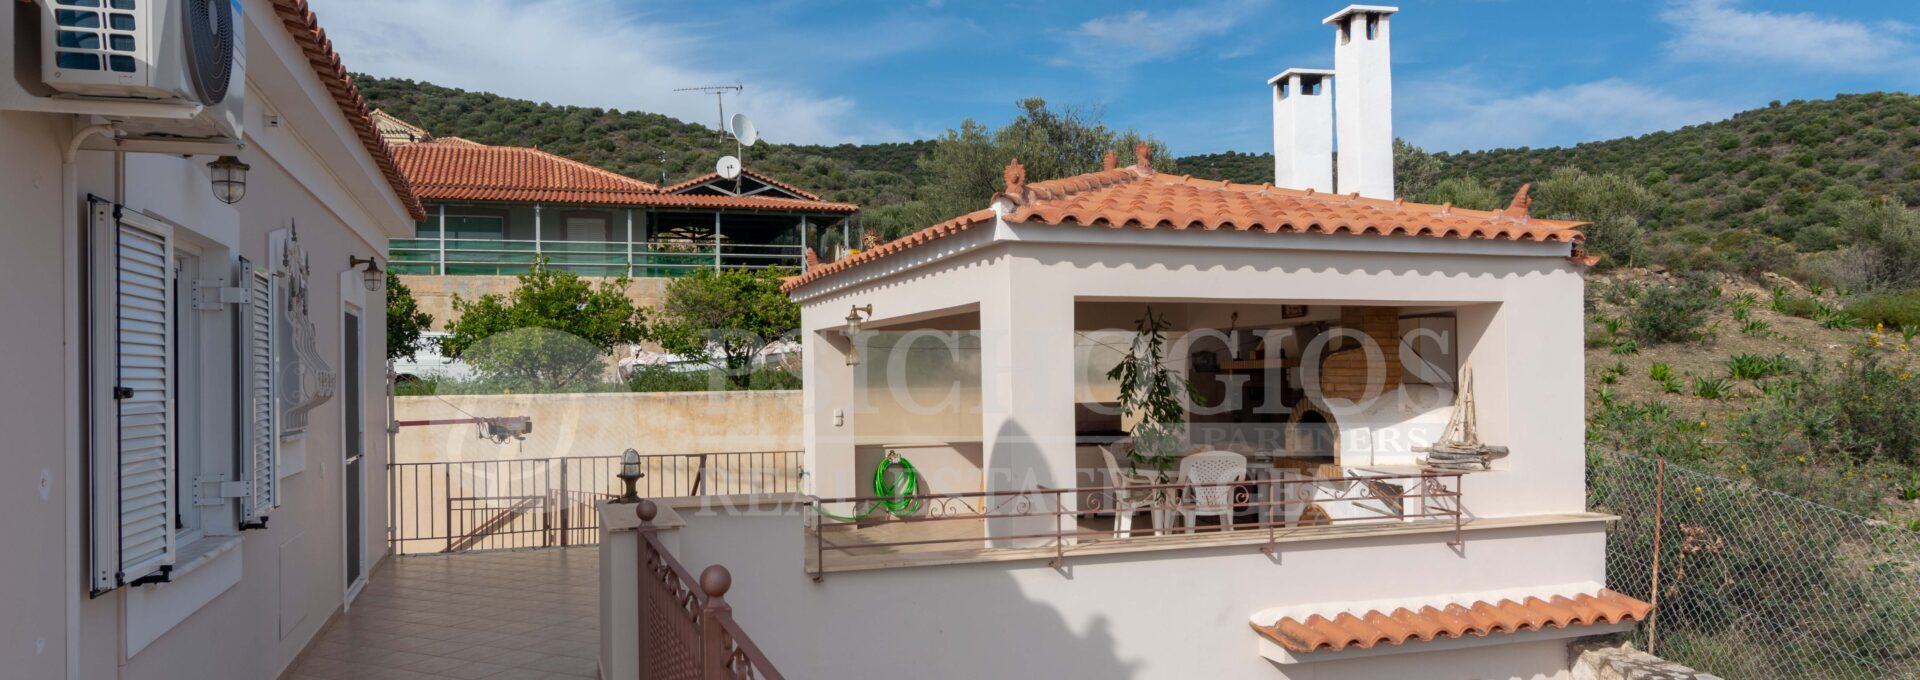 for_sale_house_107_square_meters_3_bedrooms_sea_view_ermioni_greece 1 1 (35)